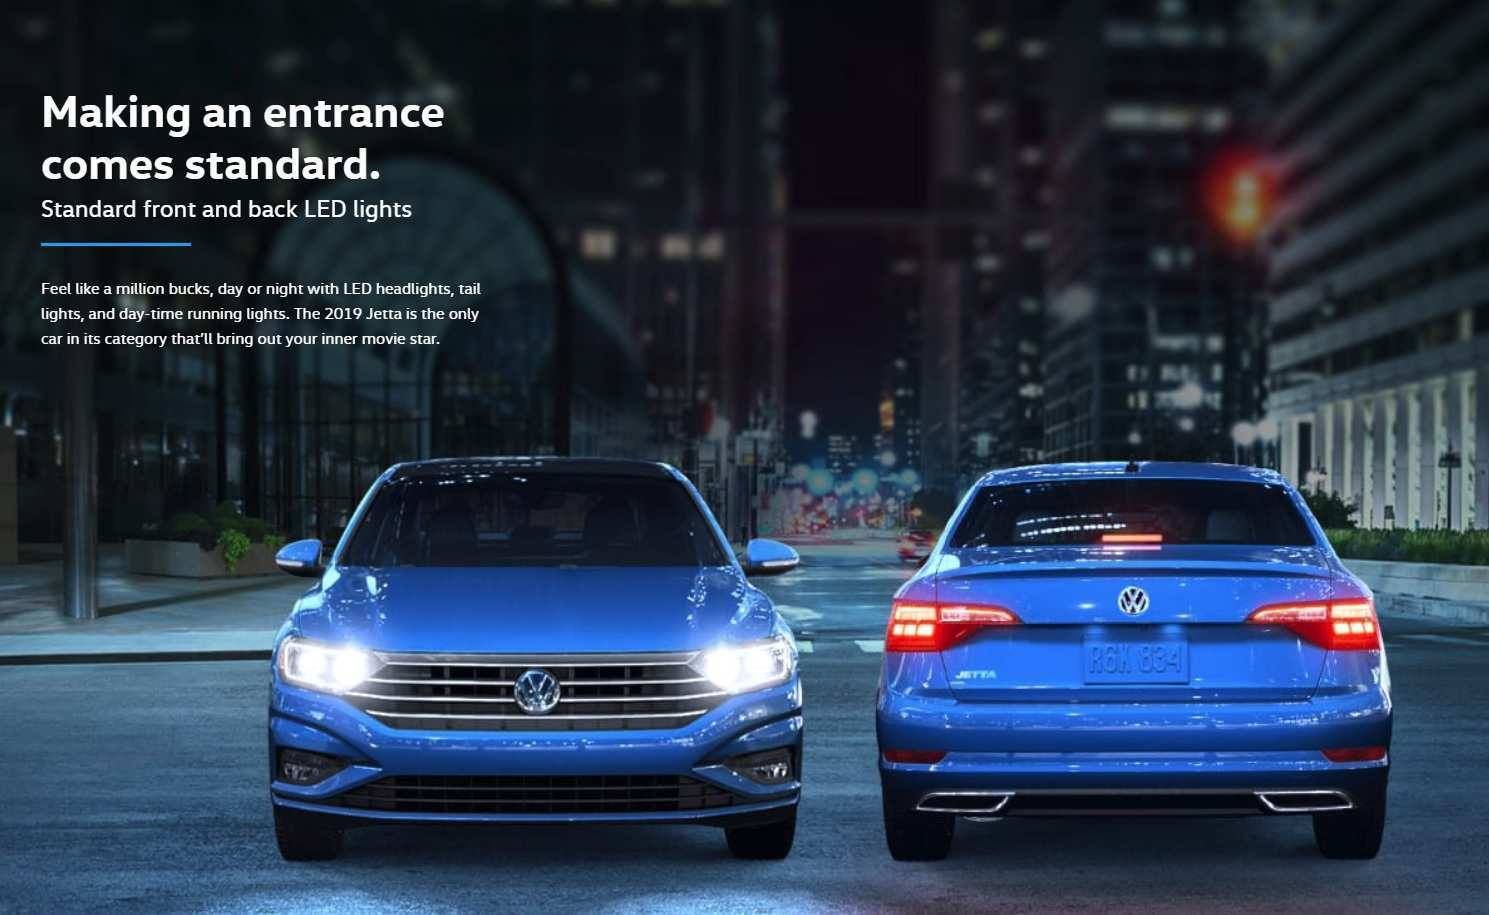 99 Gallery of Vw Jetta 2019 Canada Interior by Vw Jetta 2019 Canada